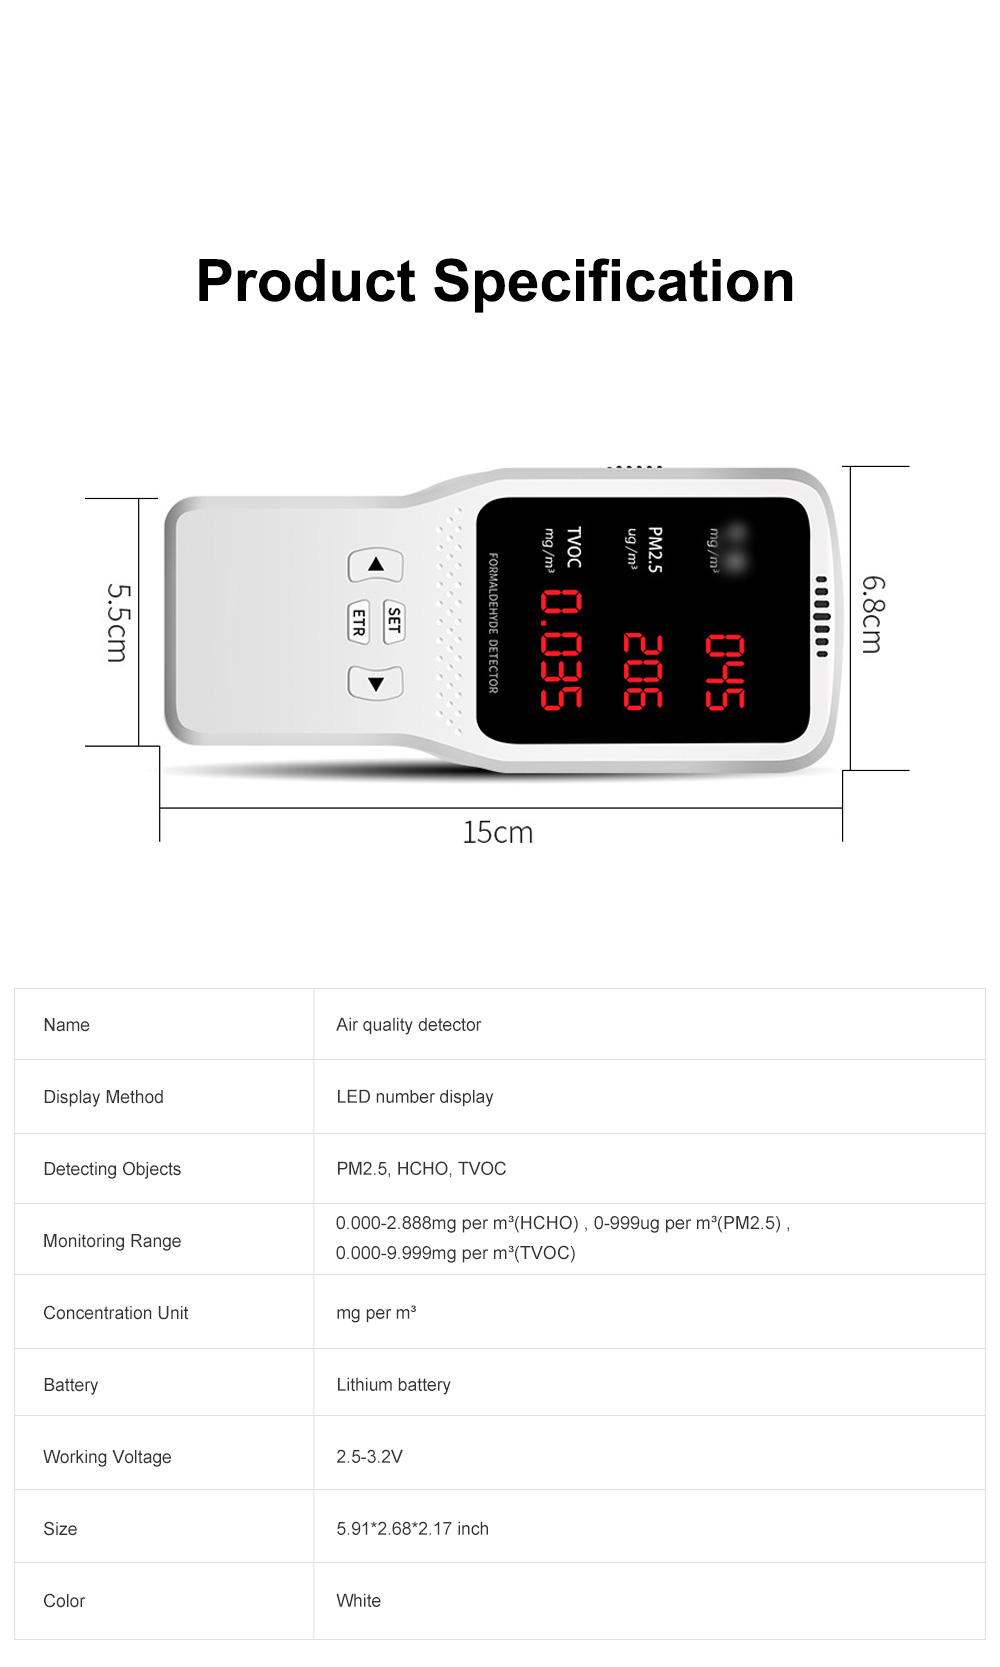 JBL Professional Stable Quick Household PM2.5 TVOC Formaldehyde Air Quality Detector with Intelligent Chip Large HD Screen 7